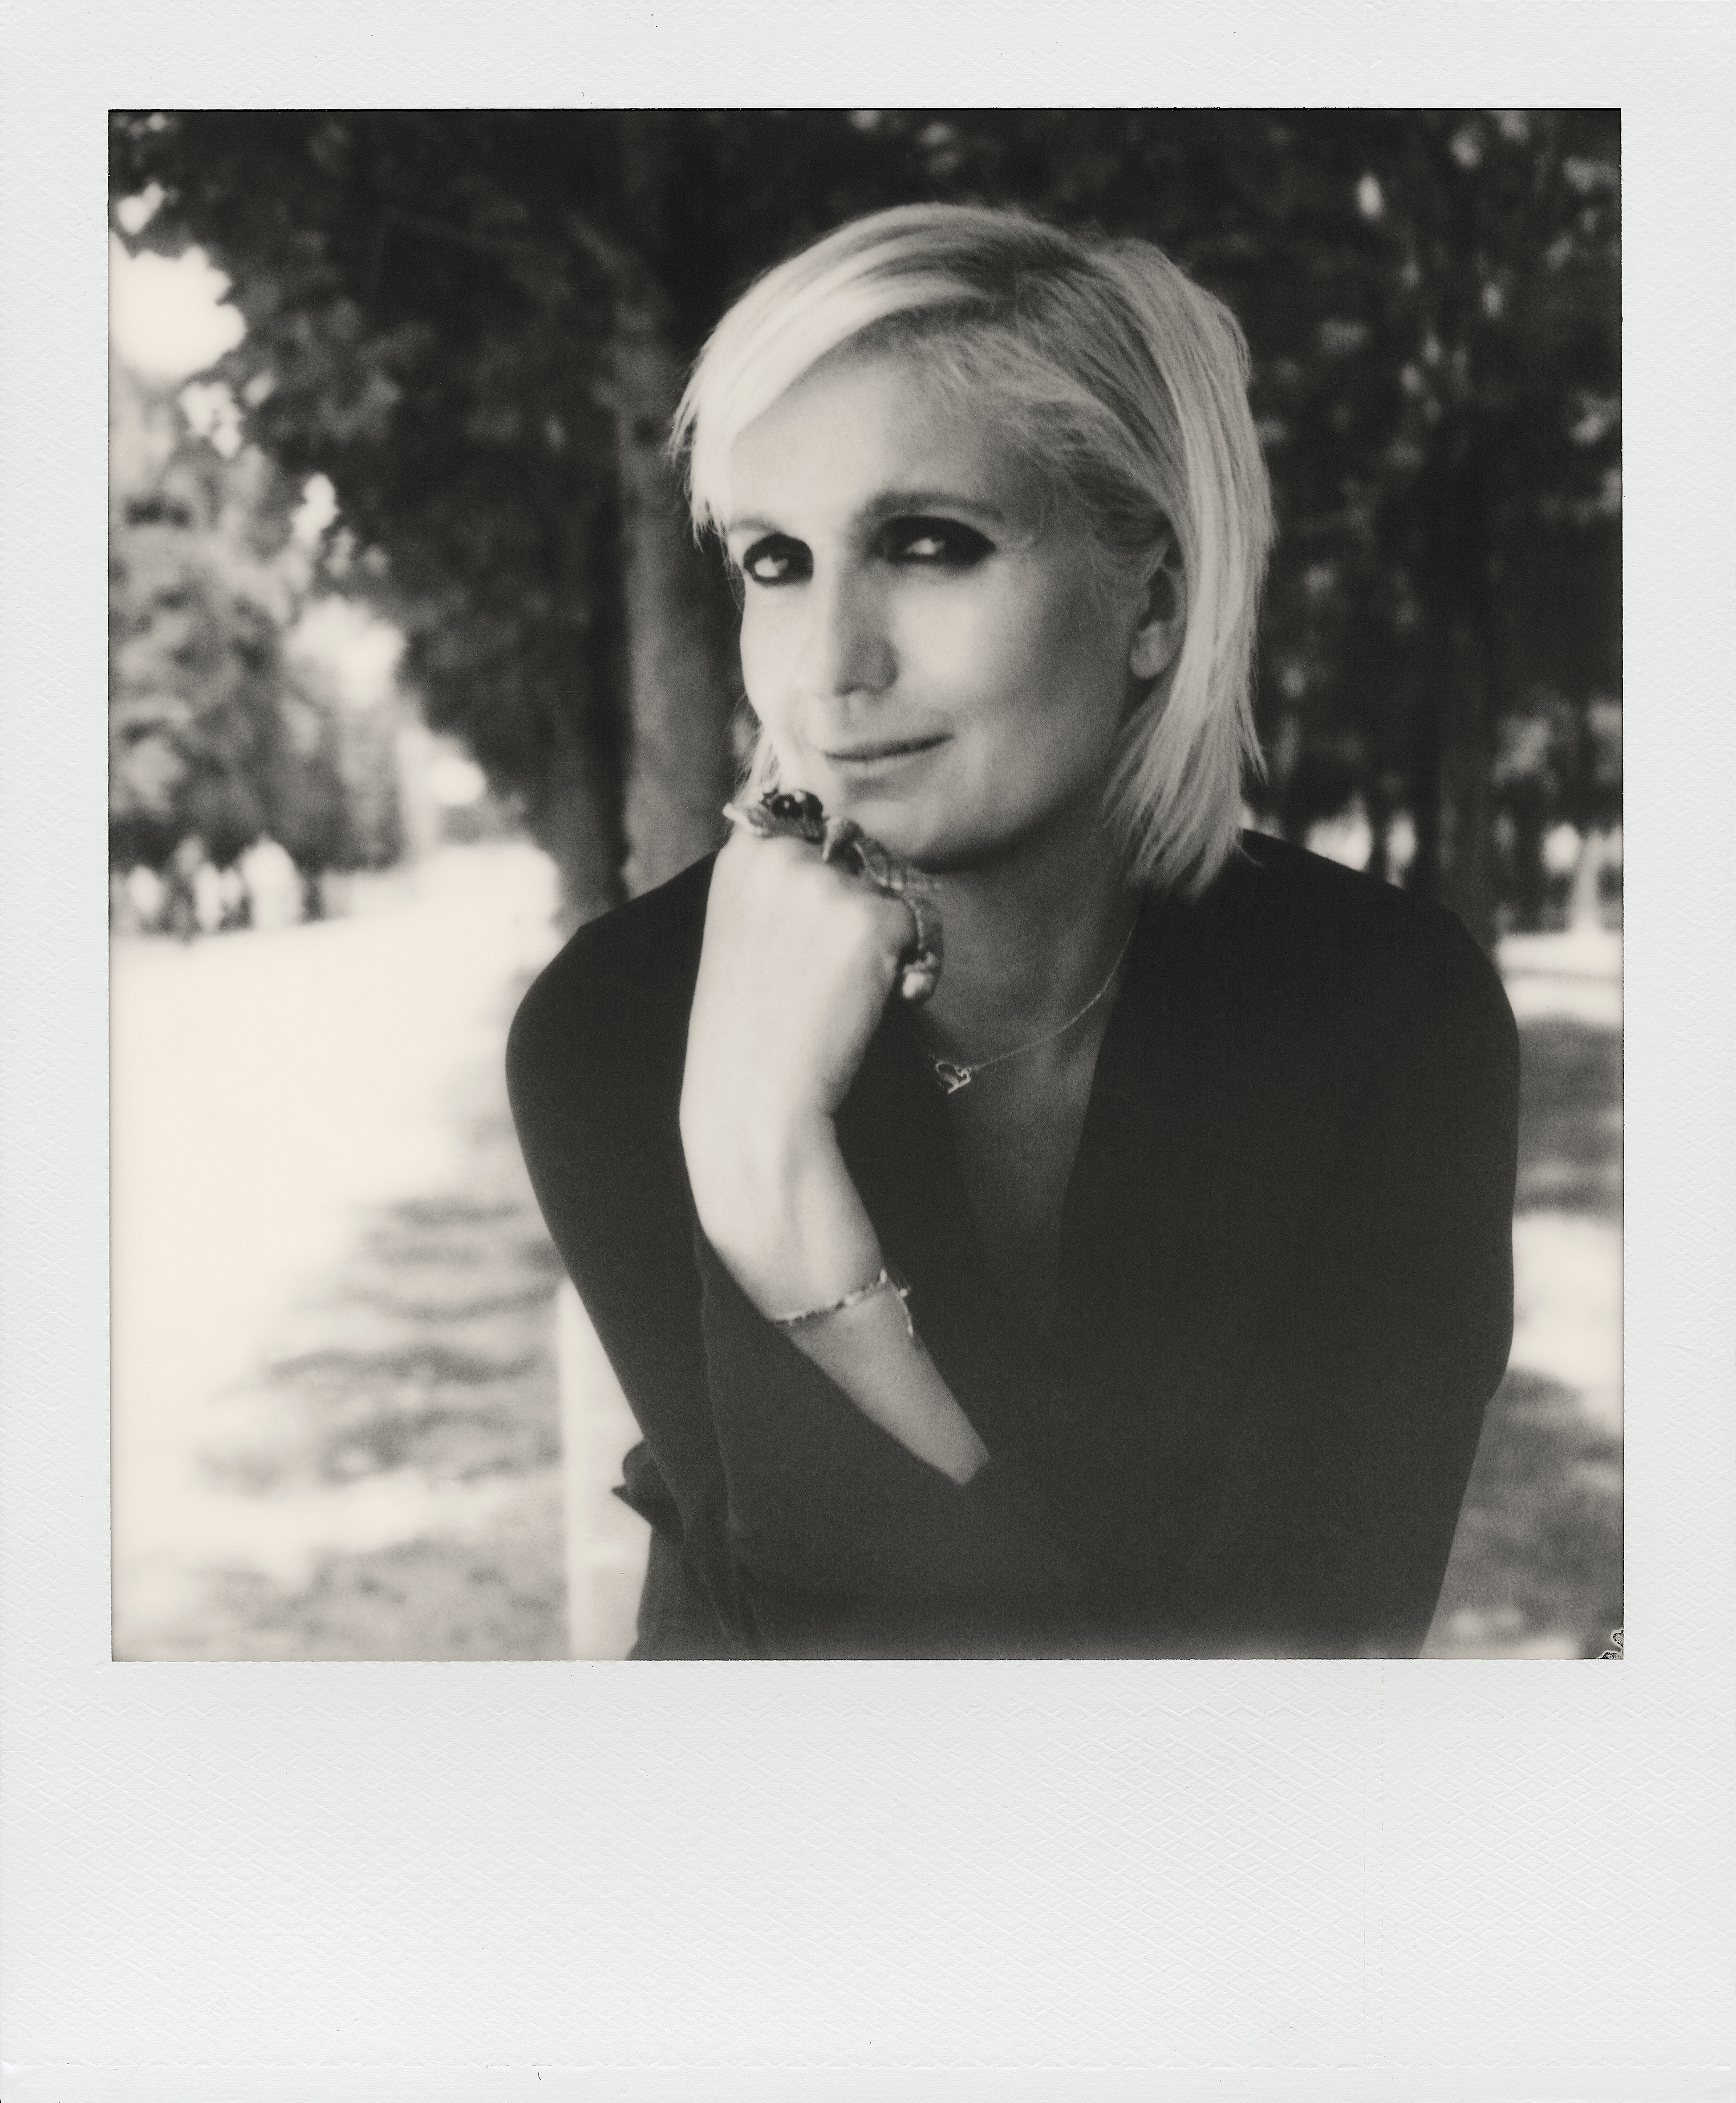 291842285bba MARIA GRAZIA CHIURI NAMED ARTISTIC DIRECTOR OF CHRISTIAN DIOR